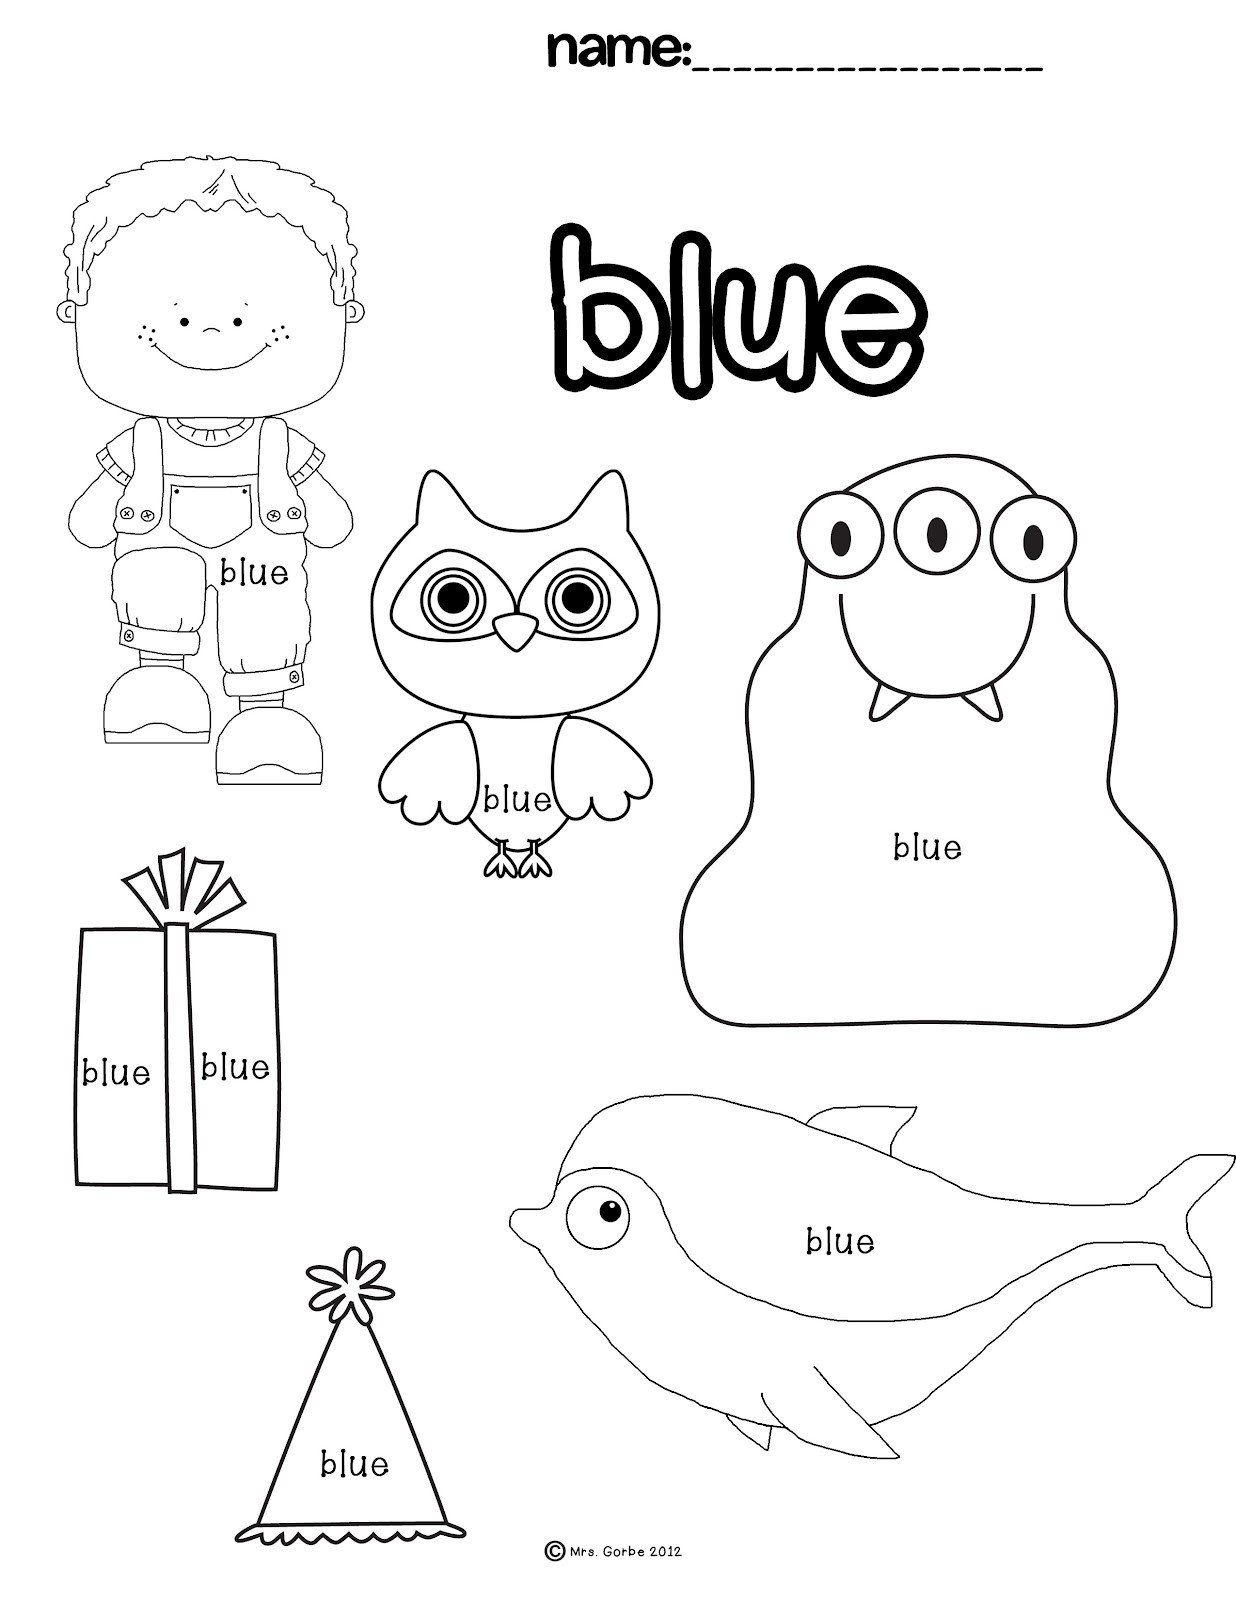 Color Blue Worksheets For Preschool A Purple Color